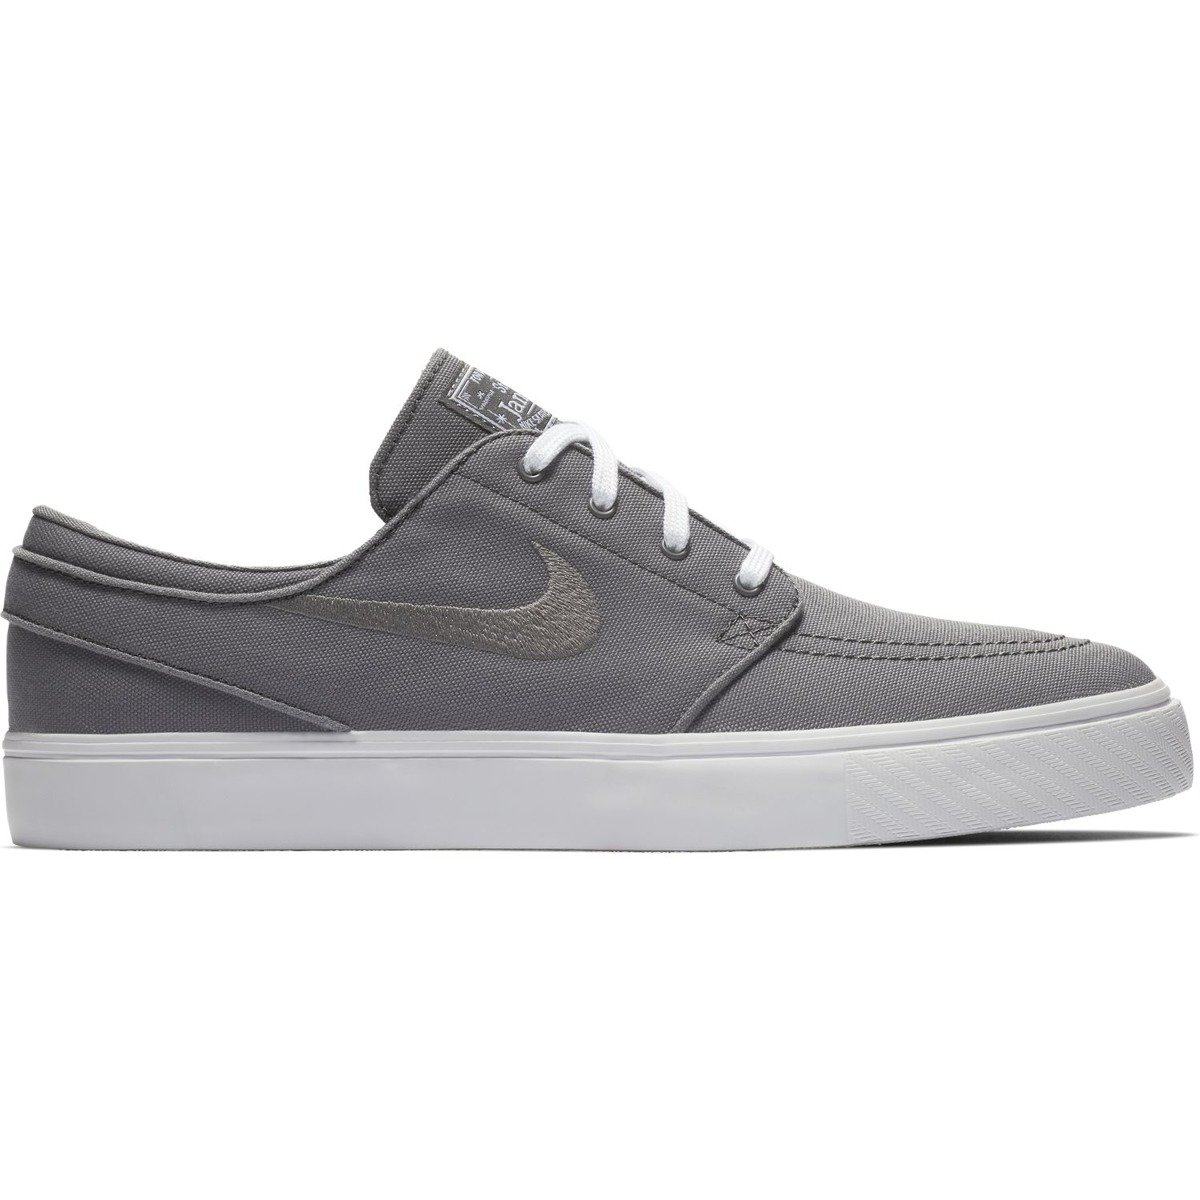 hot sales 44a56 b6c09 ... 615957-023. nike janoski canvas gunsmoke gunsmoke-white Click to zoom  ...